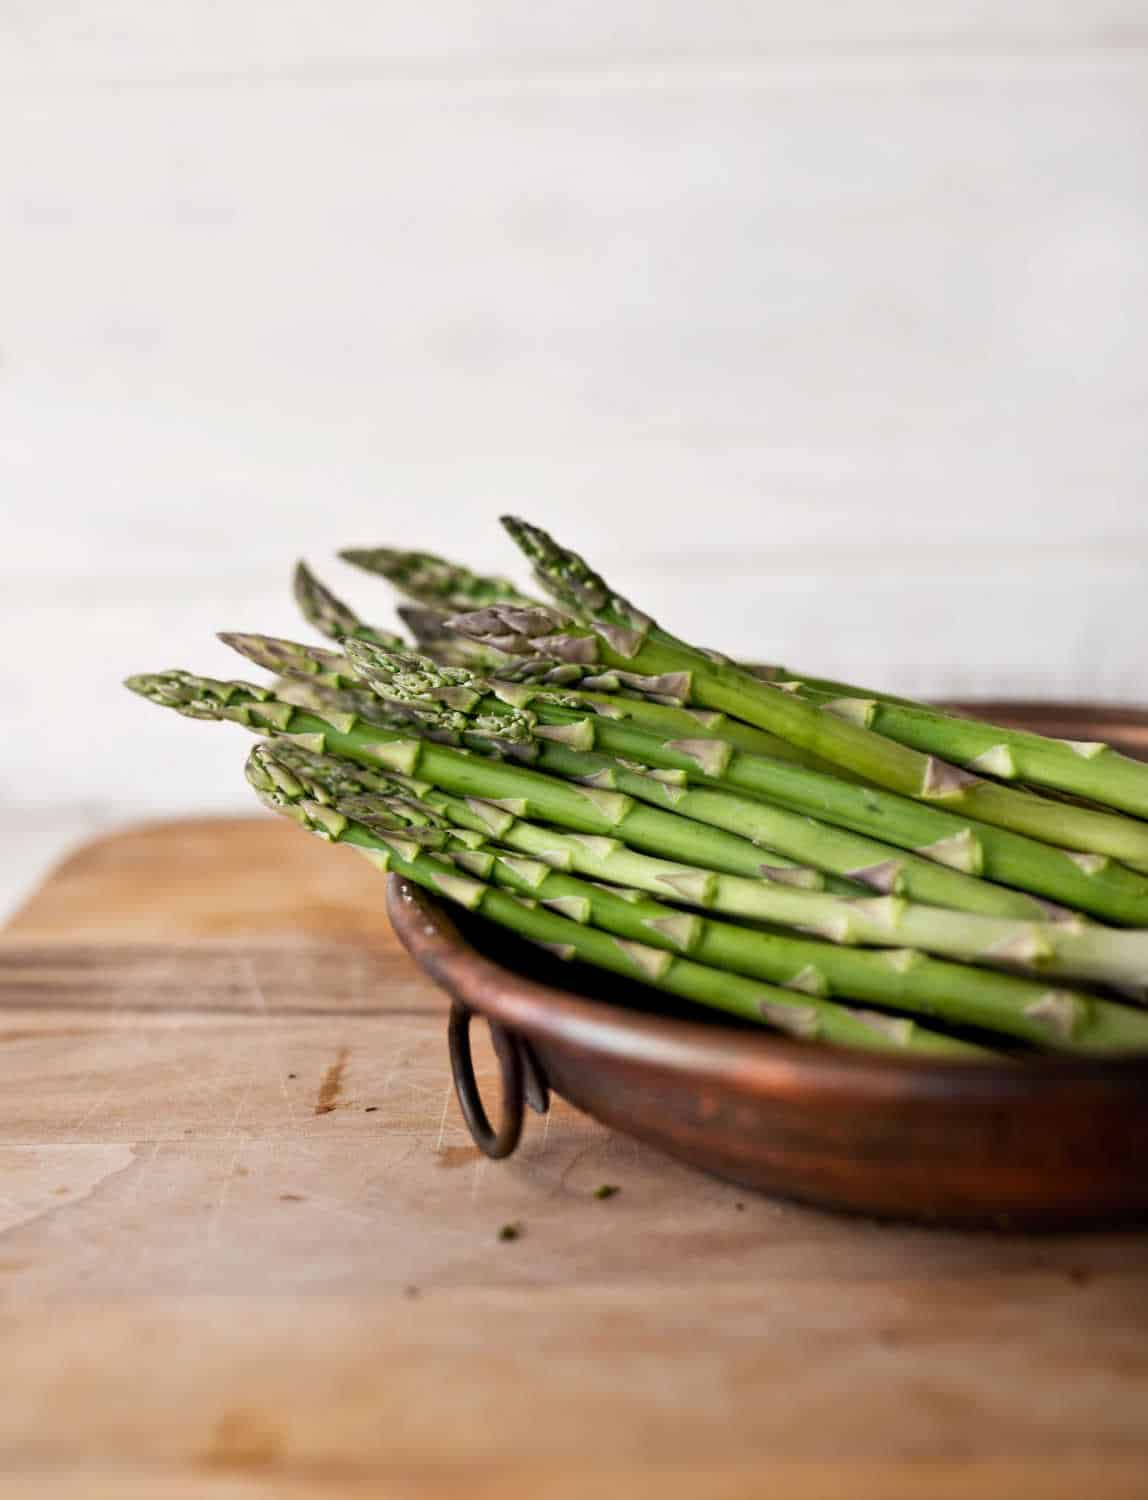 a picture of garden asparagus on a wooden table